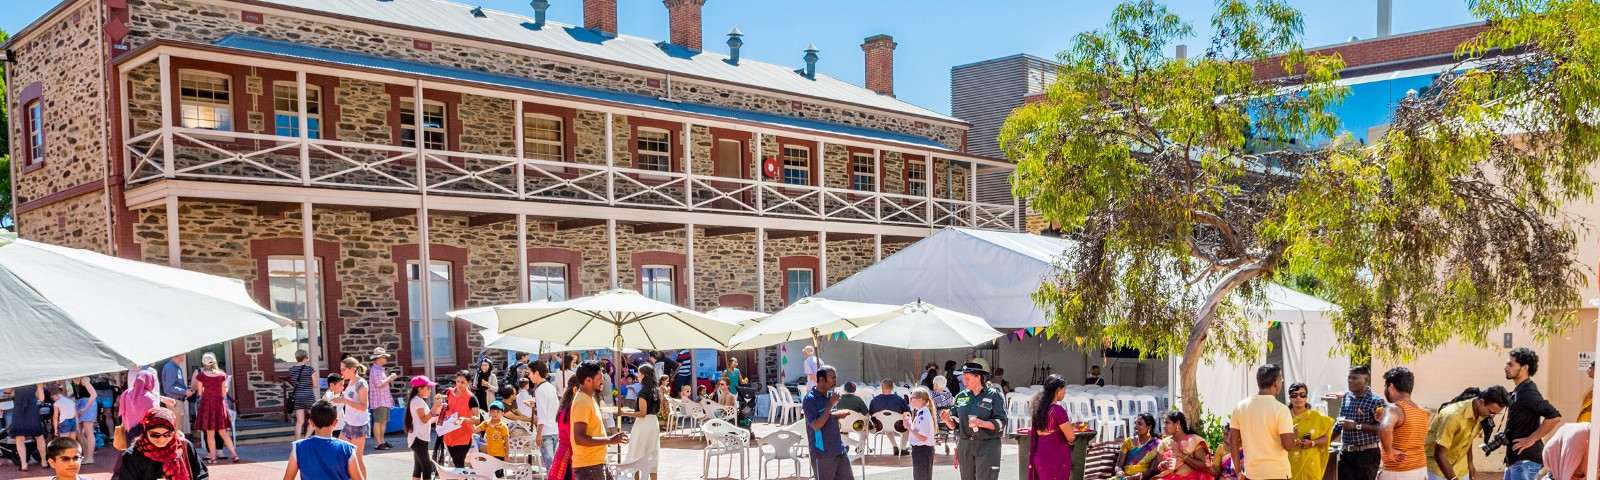 Crowd of people in a courtyard with marquee and umbrellas set up in front of a two story bluestone building.